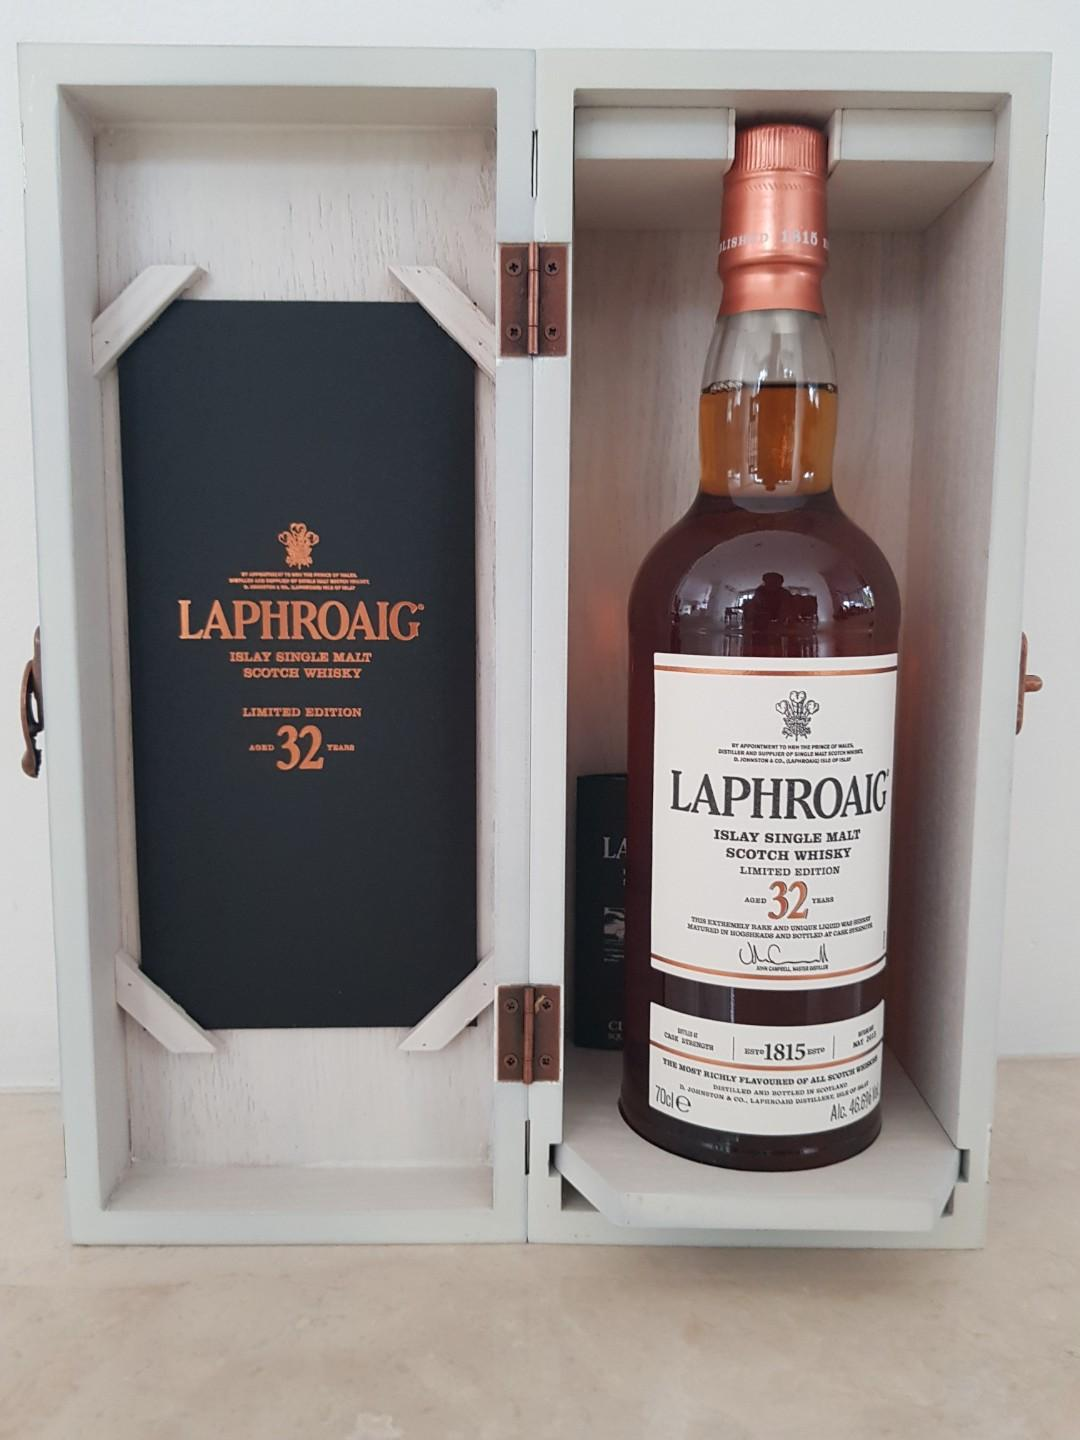 Laphroaig 32 years old Limited Edition. Sherry cask